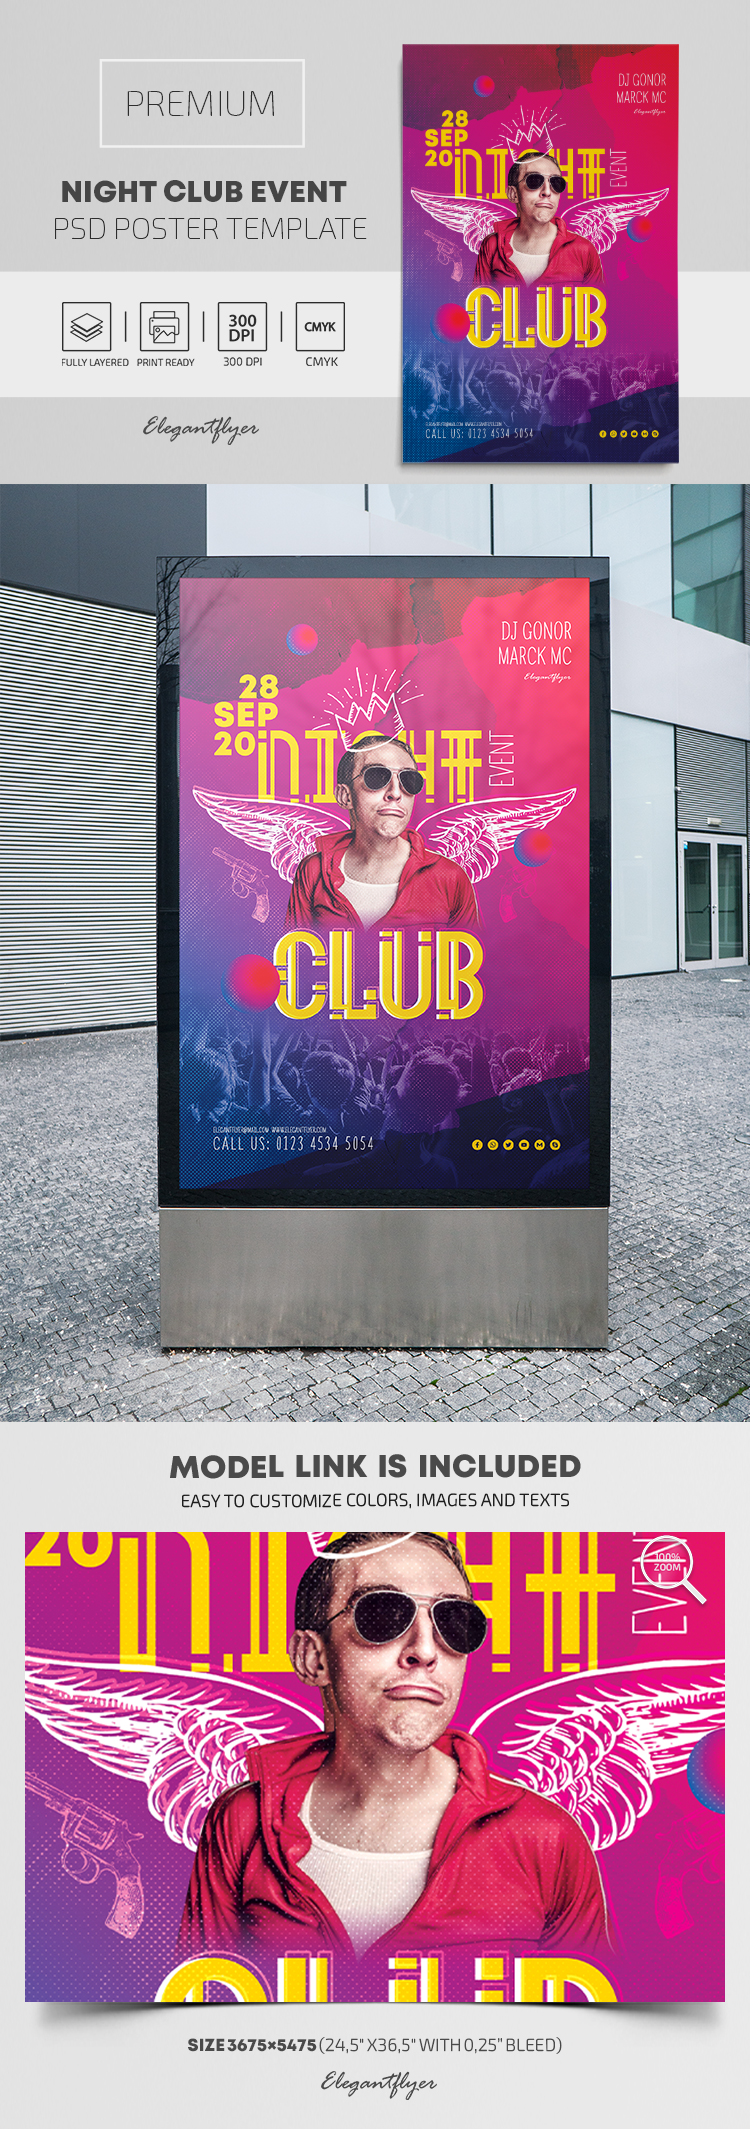 Night Club Event – Premium PSD Poster Template